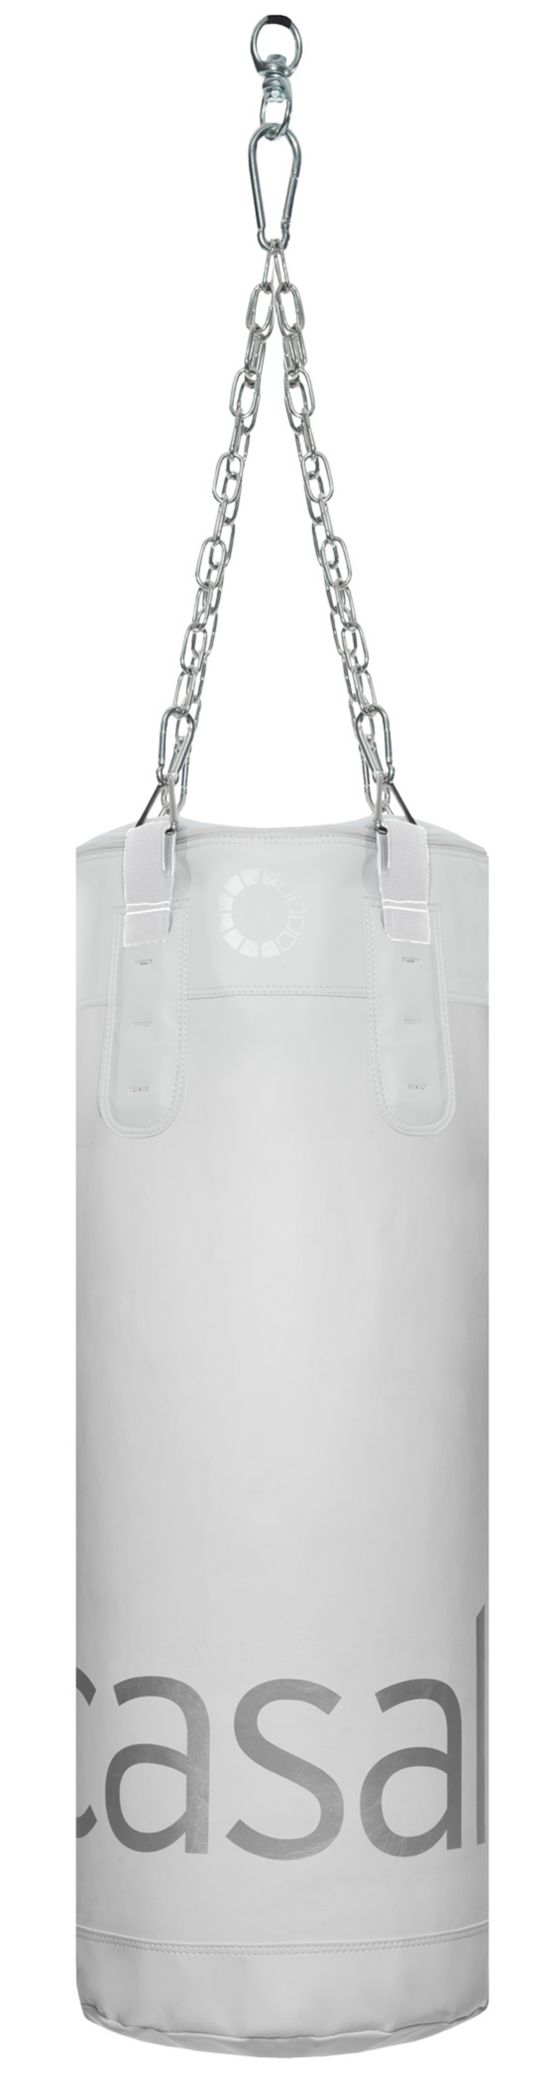 Boxing bag 80 cm WHITE